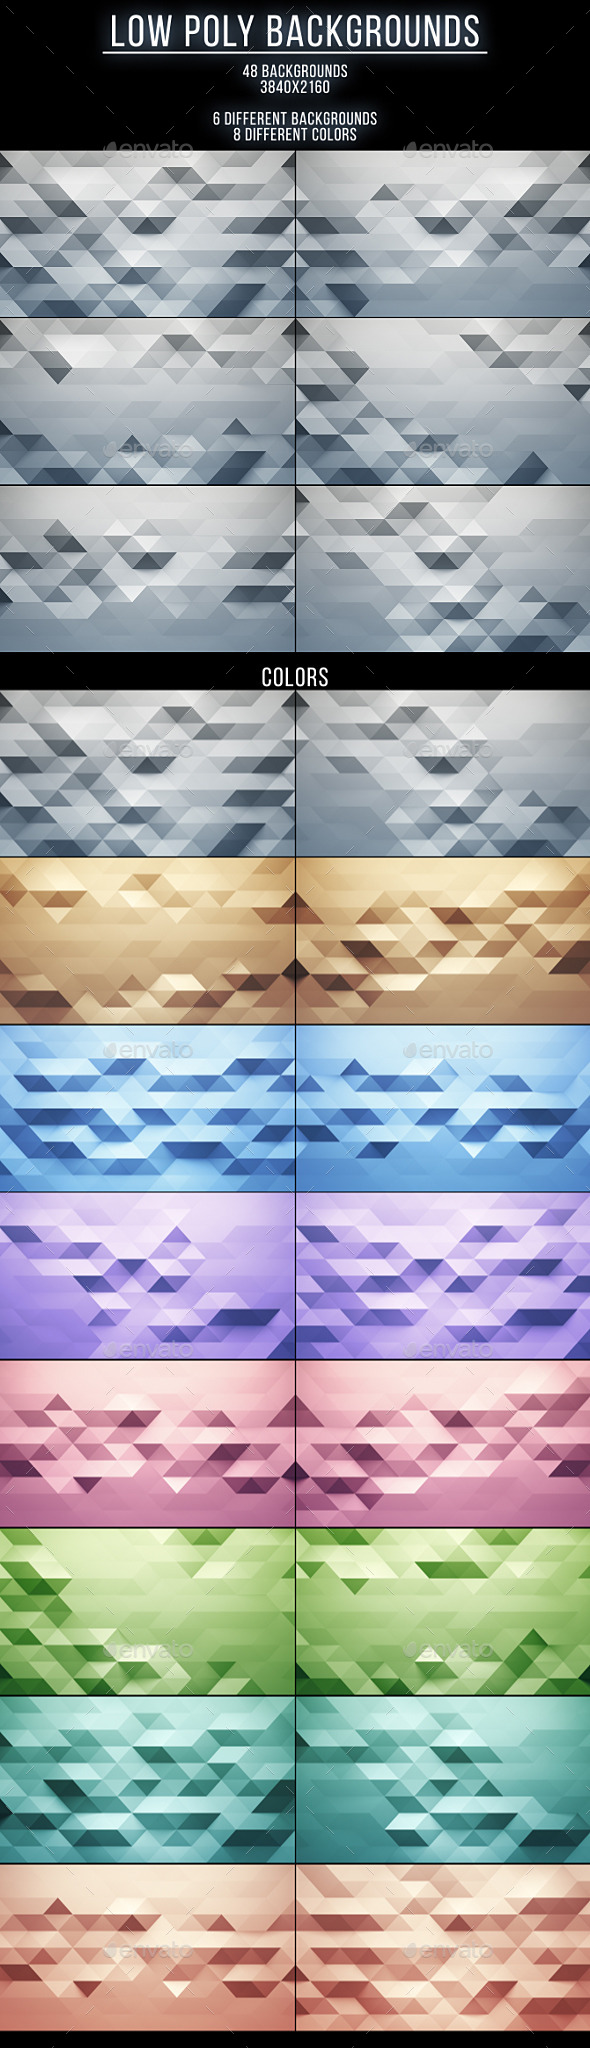 48 Low Poly Backgrounds - Abstract Backgrounds